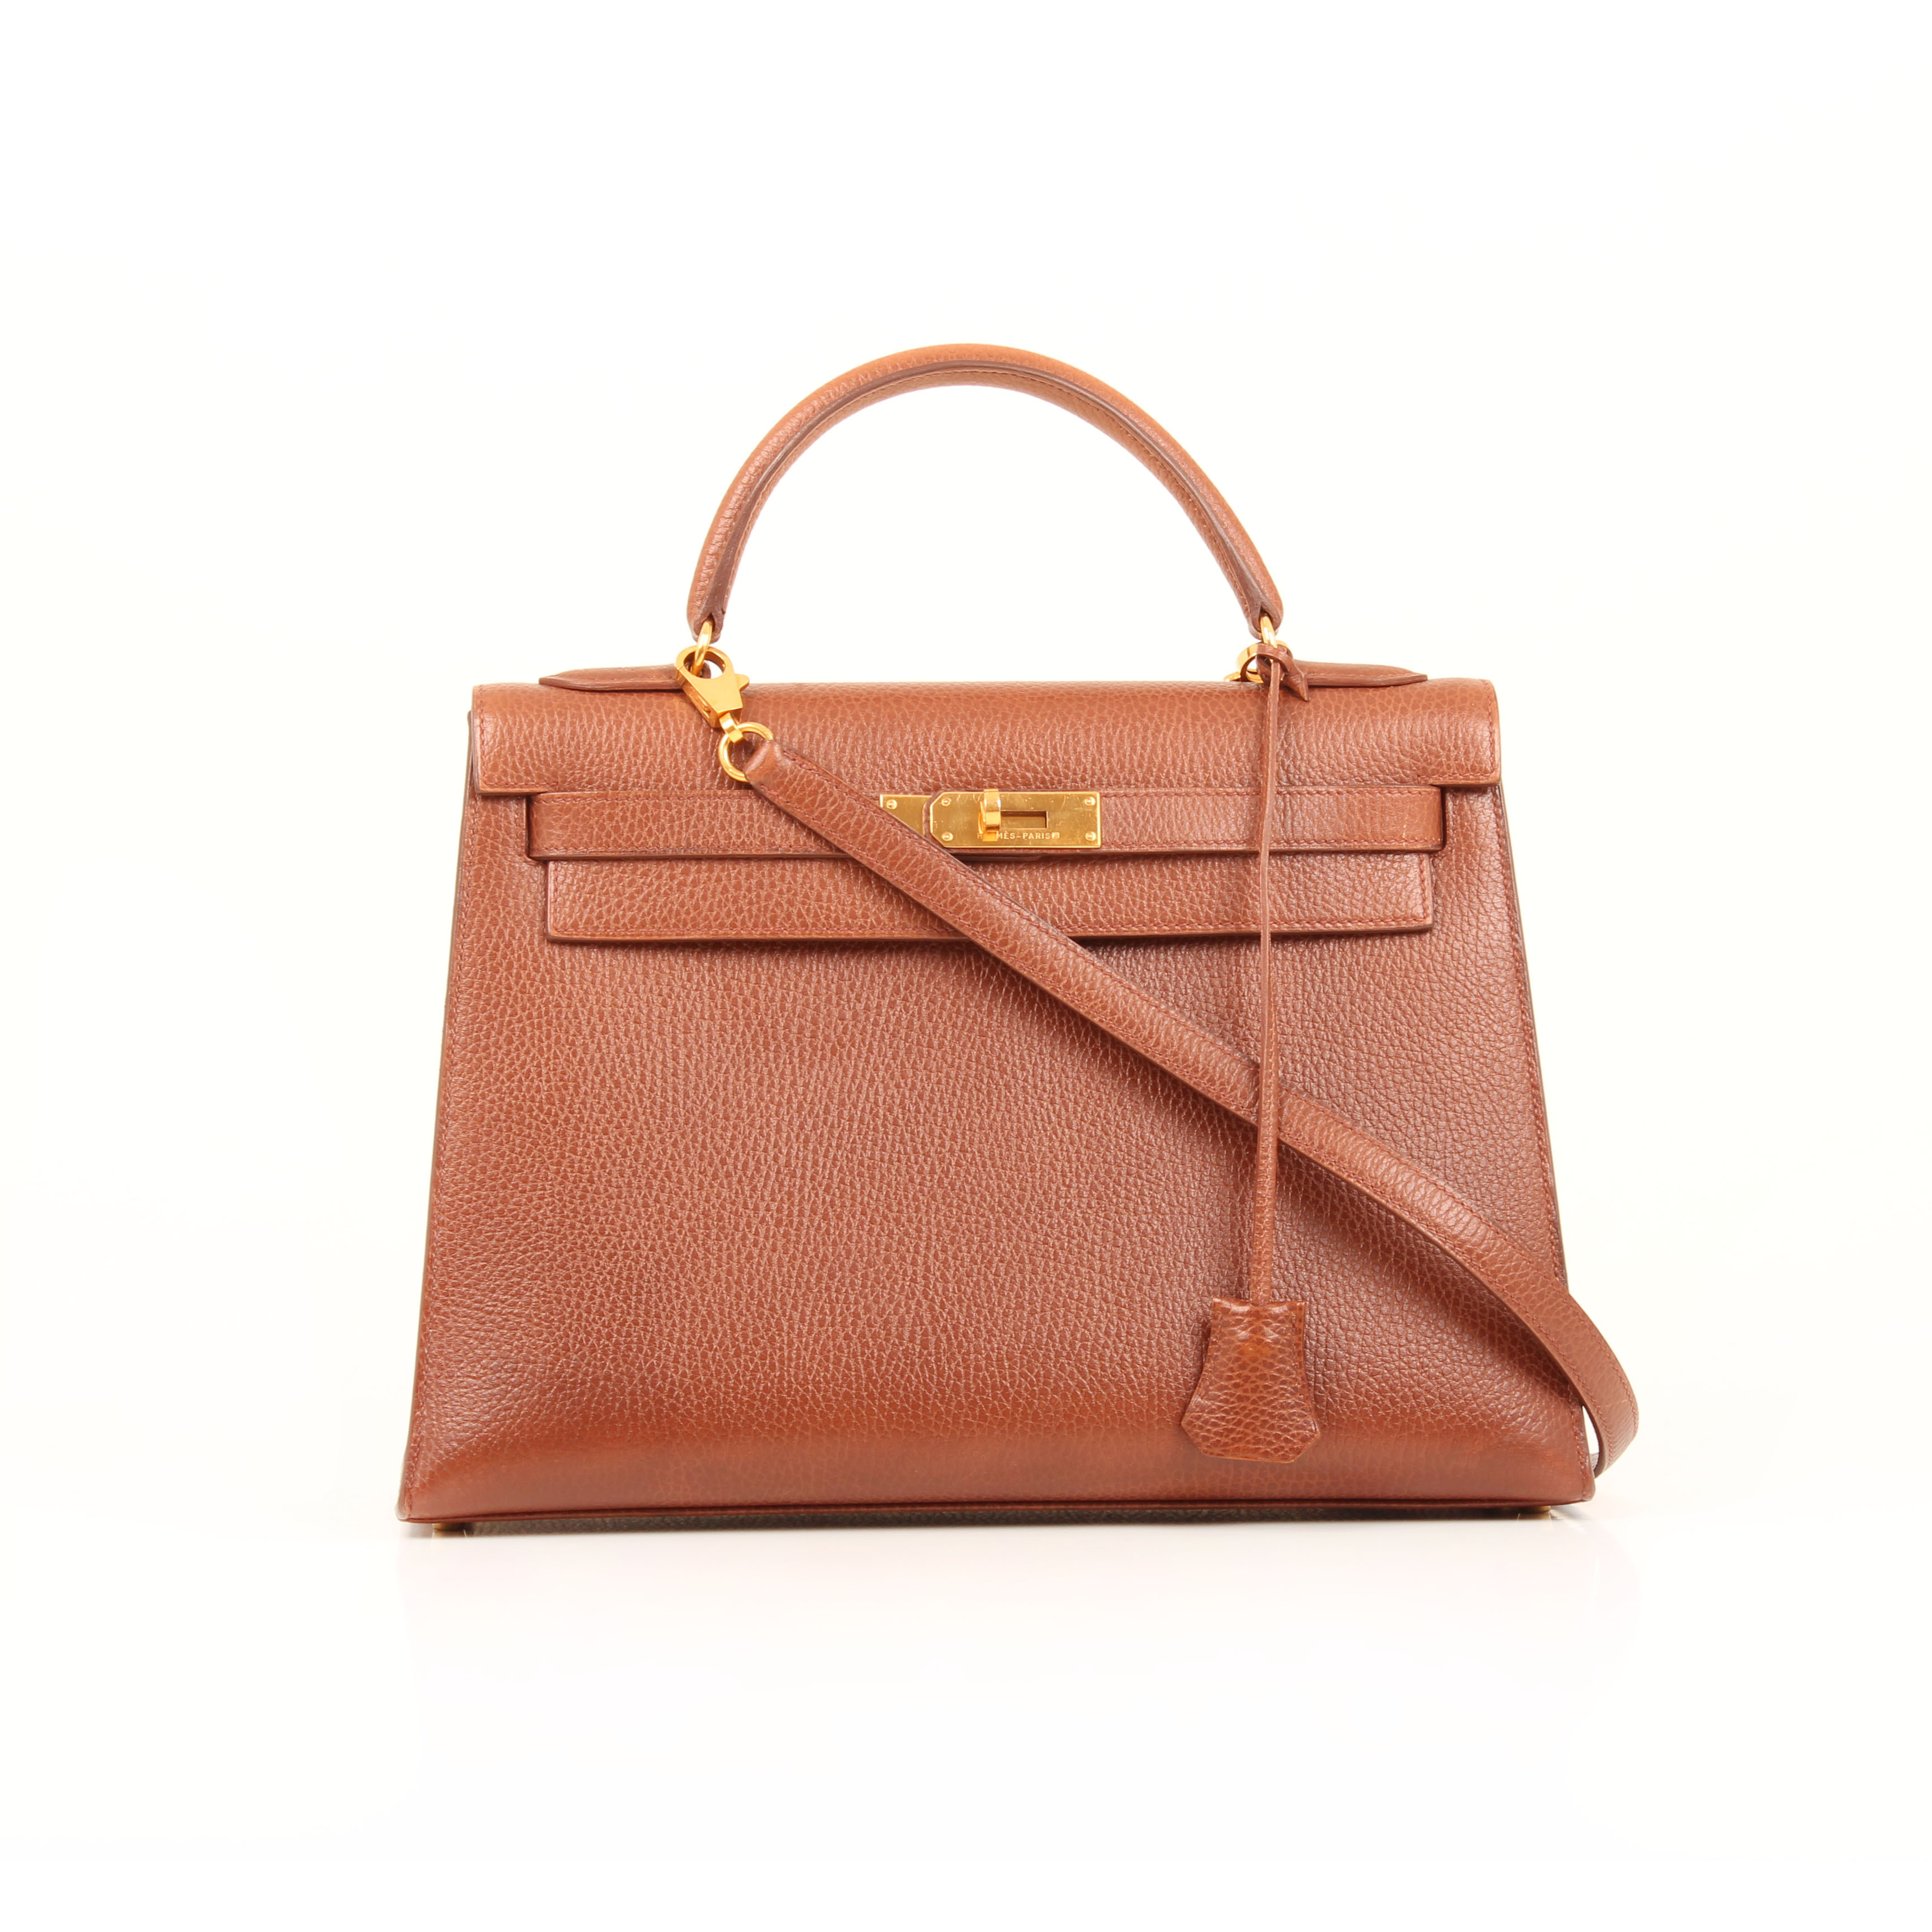 Frontal image of hermes kelly 32 bag sellier ardenas leather brown noisette